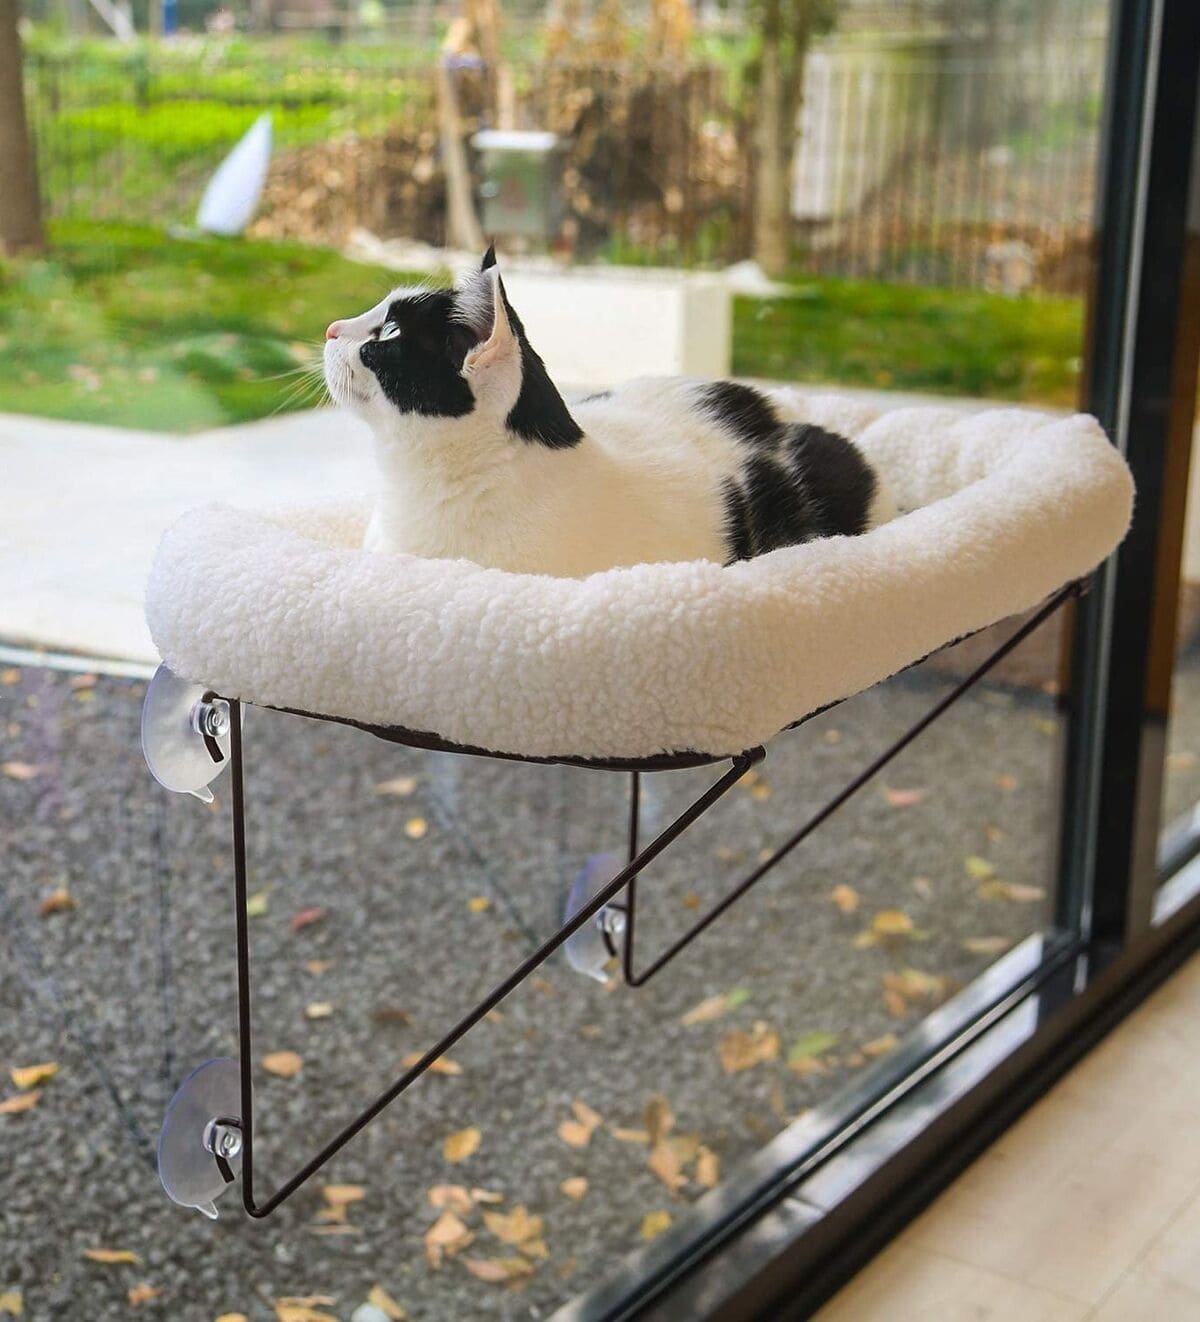 pet furniture 14 - 18 amazing pet furniture ideas that are perfect solutions for small spaces